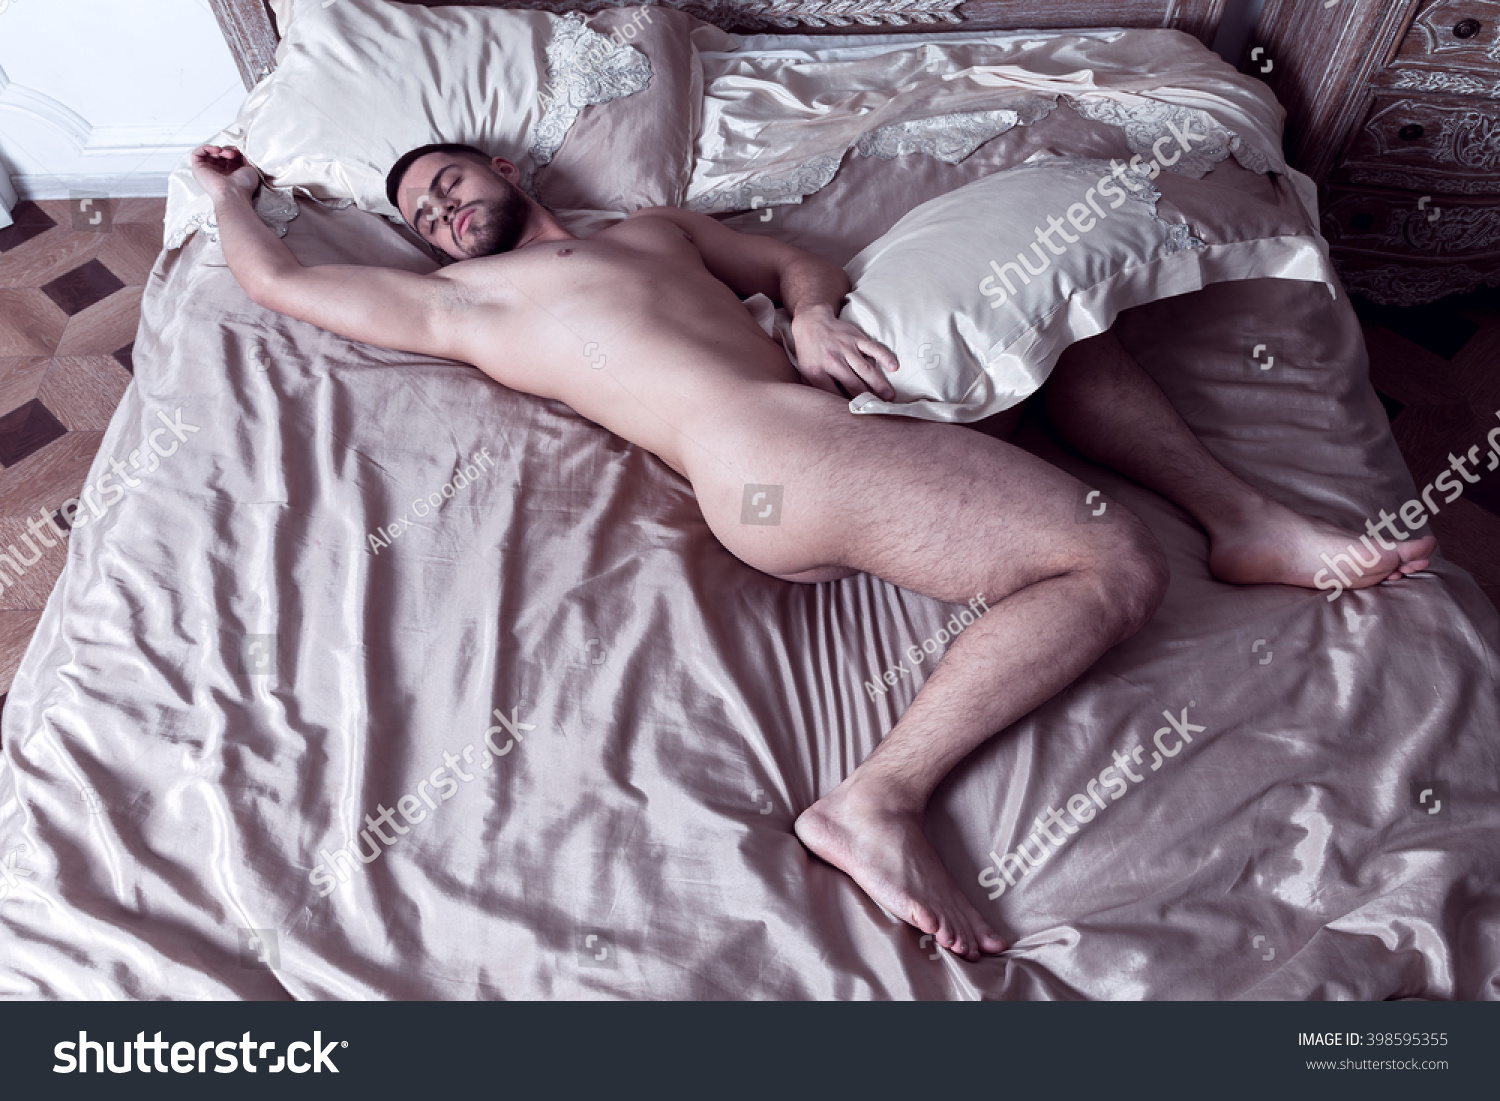 male asleep nude ass